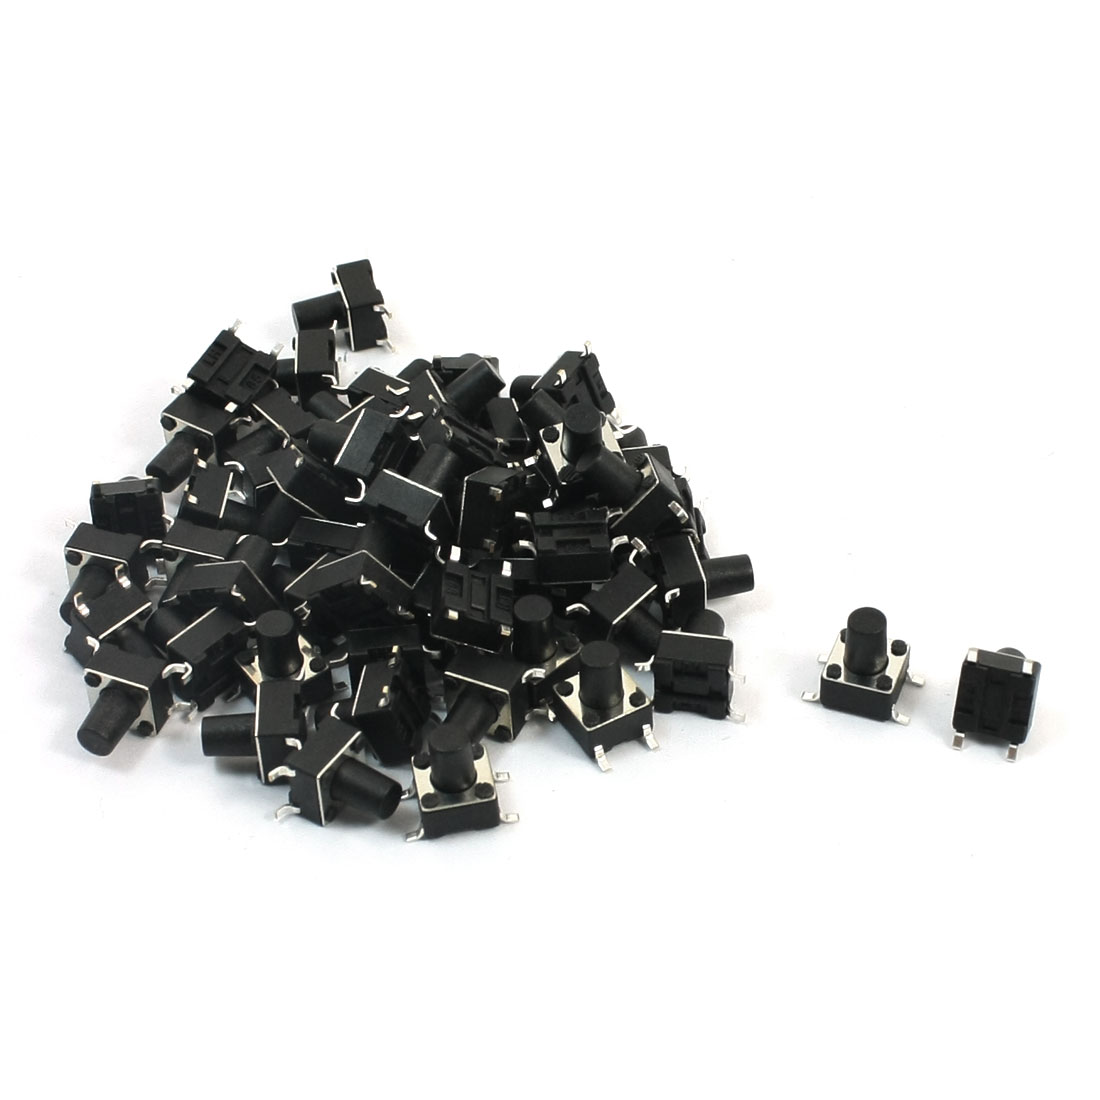 55Pcs Momentary Tact Tactile Push Button Switch 6mmx6mmx8mm 4-pin